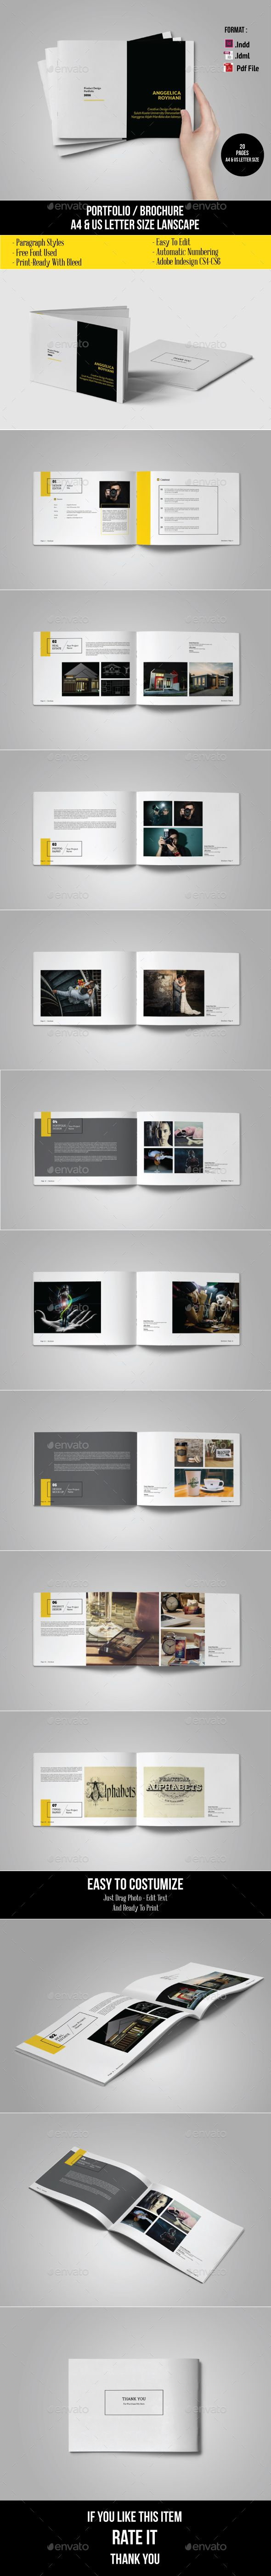 Minimal Multipurpose Portfolio Brochure Template InDesign INDD #design Download: http://graphicriver.net/item/multipurpose-portfolio-template/14369404?ref=ksioks